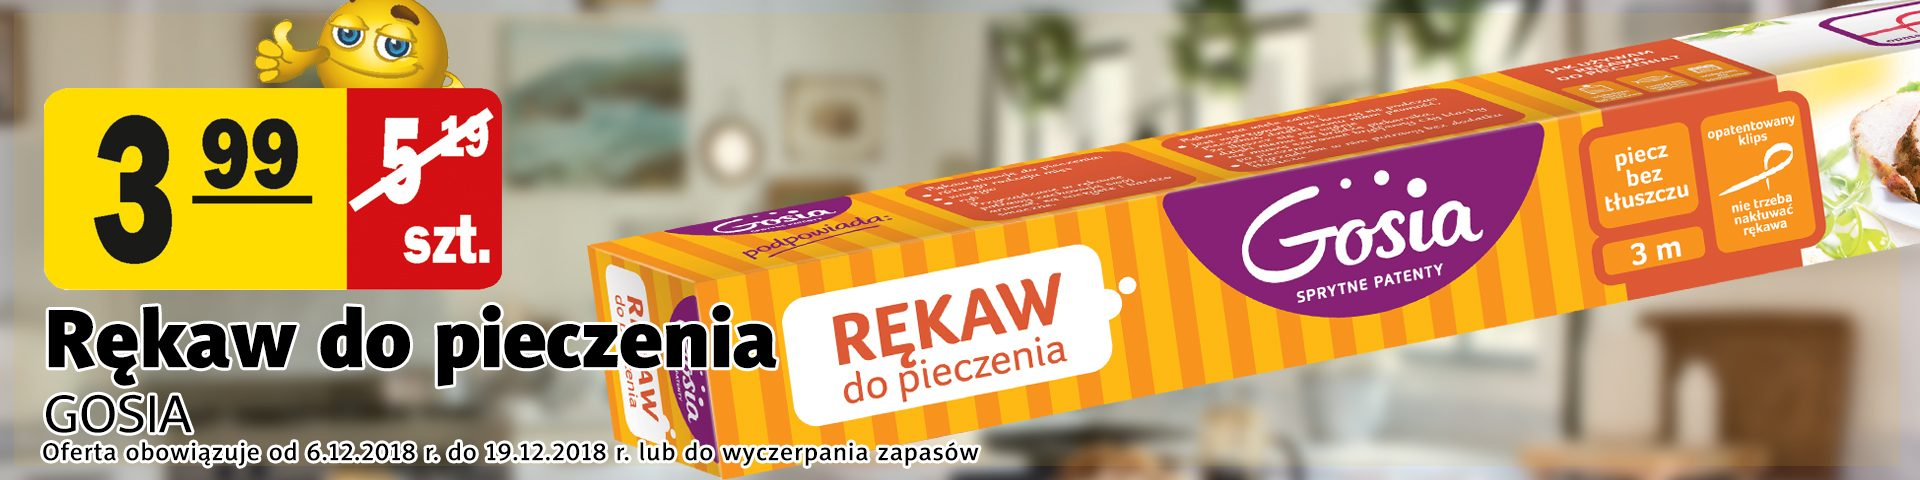 6-19.12.2018 rekaw do pieczenia